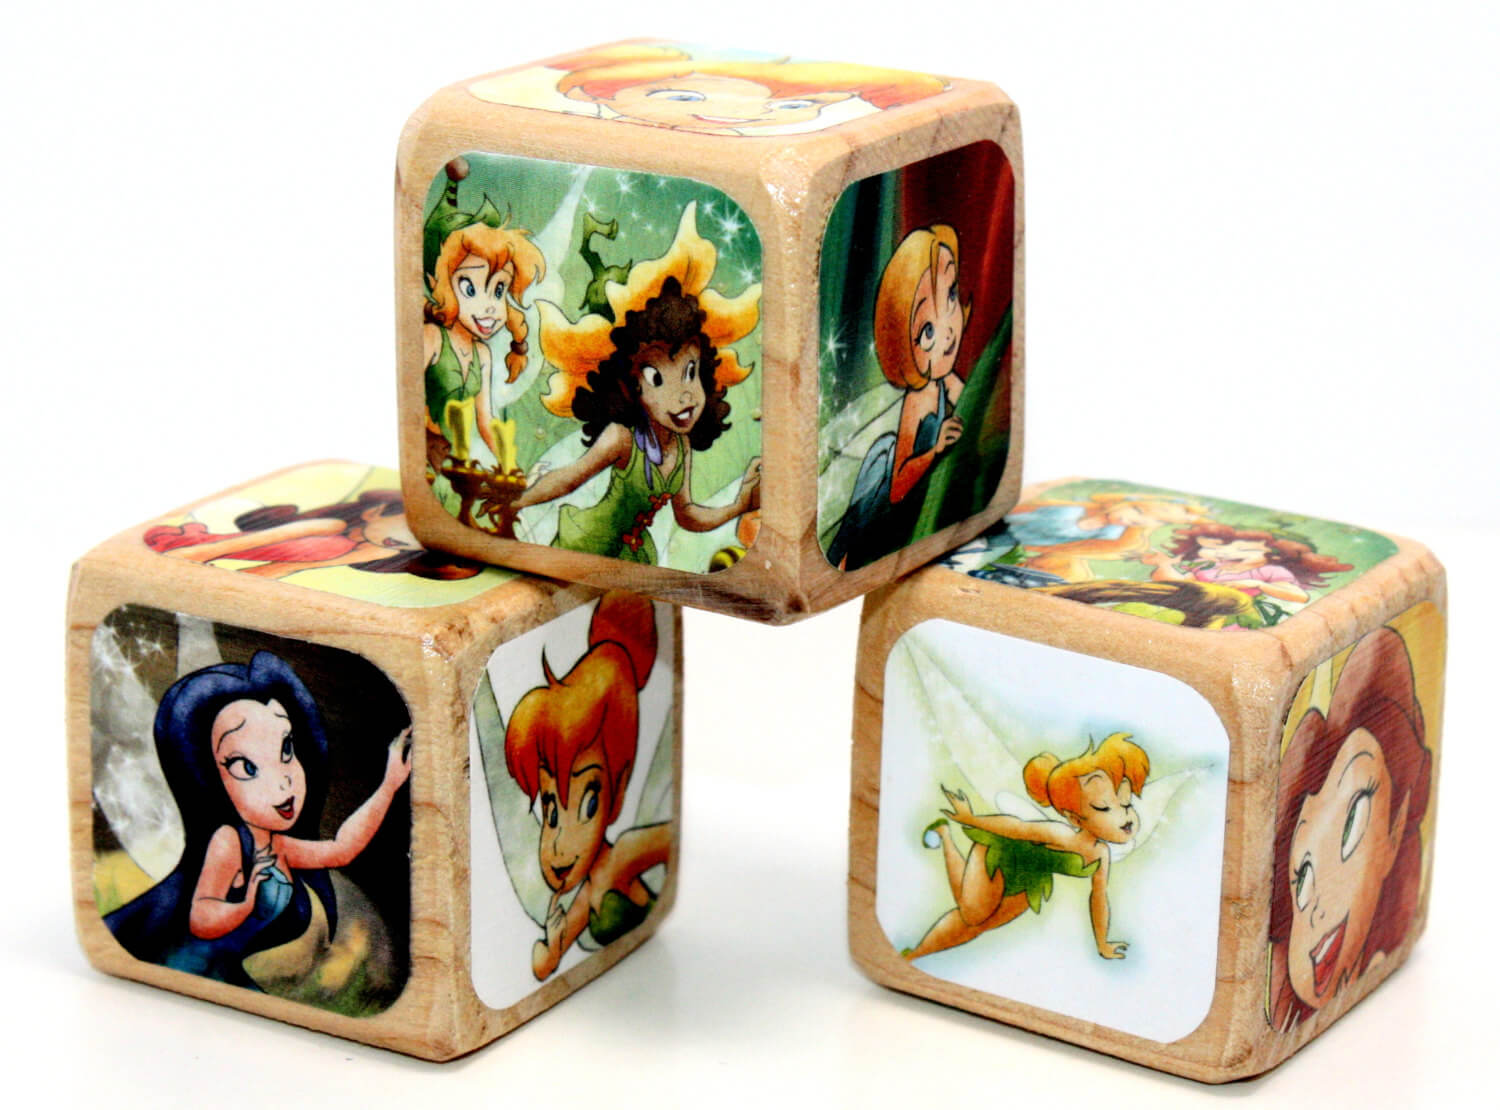 Disney Fairies - Wooden Blocks - Baby Blocks